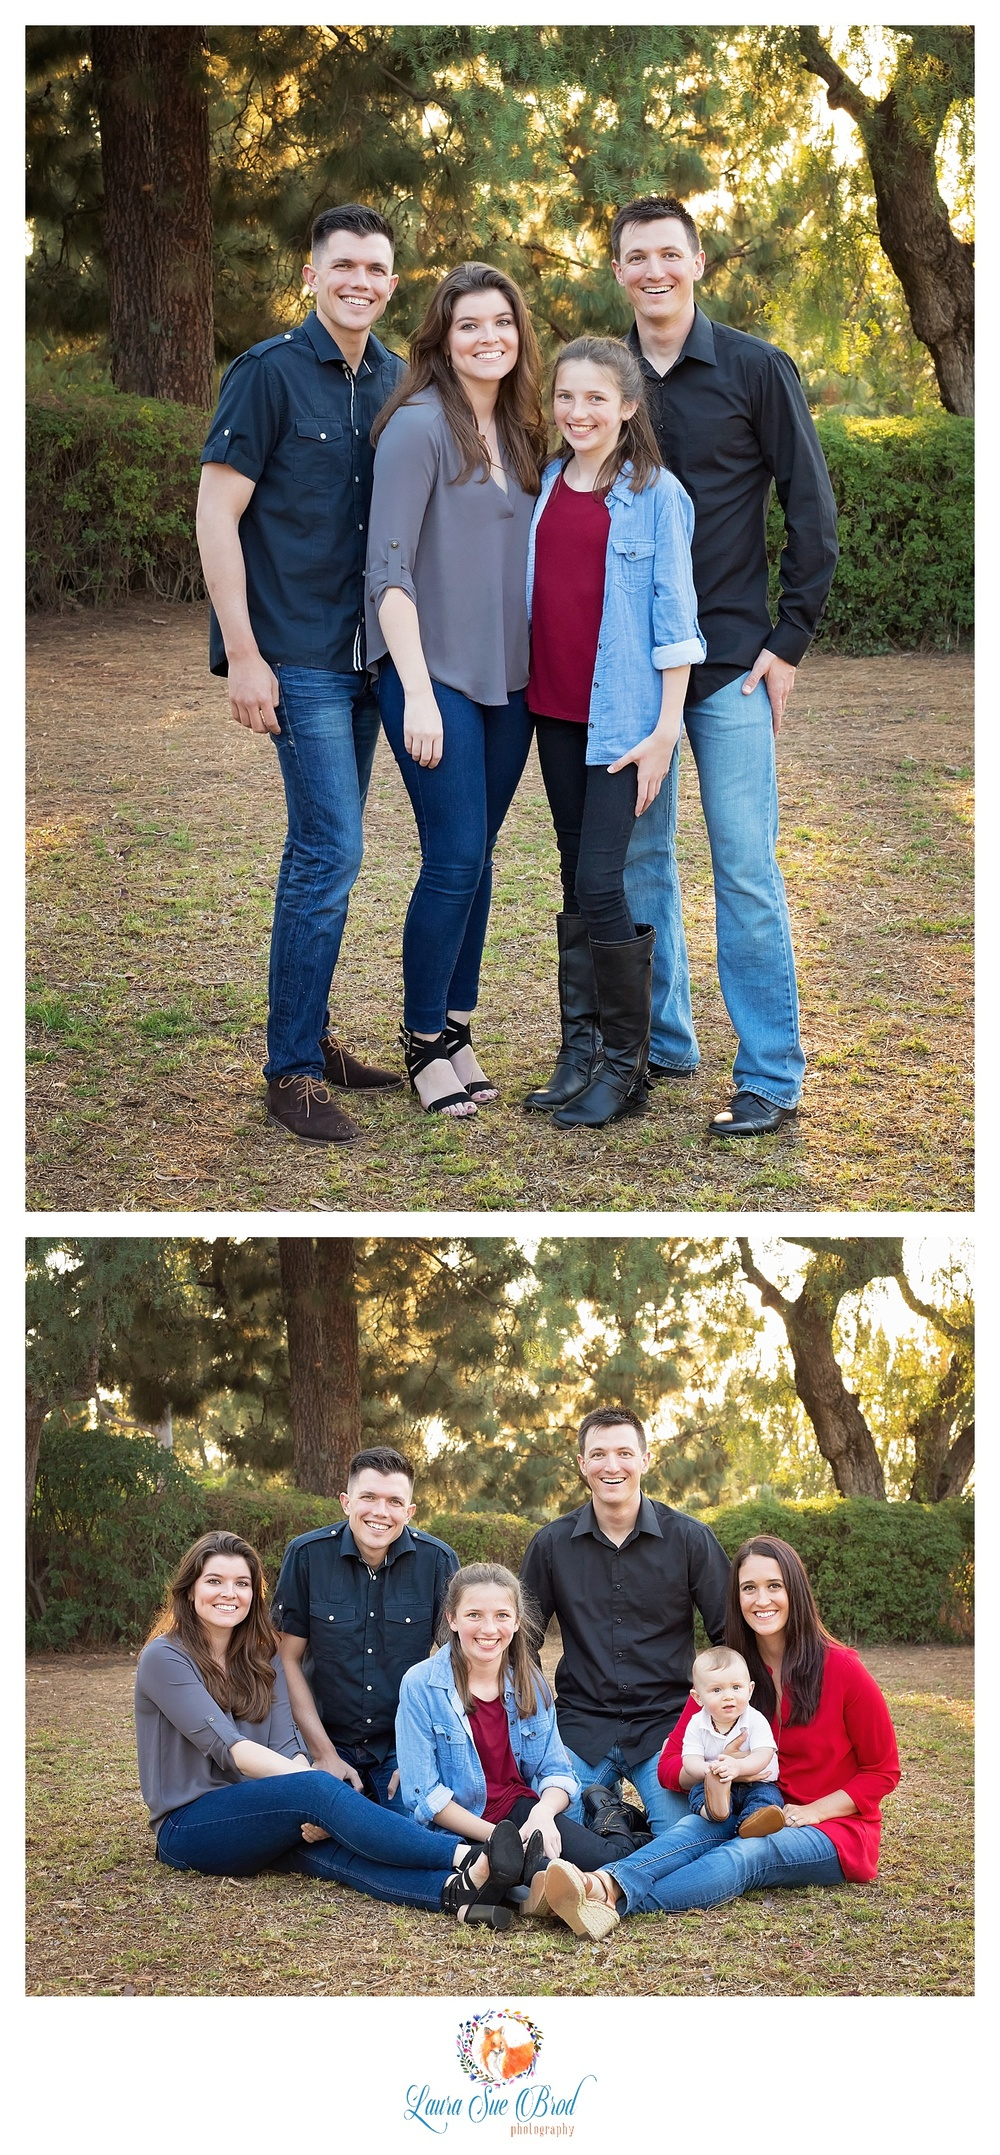 Portraits - Siblings. The McNamara Family. Family session at park during golden hour in Costa Mesa, California. Laura Sue Brod Photography - 2016  www.laurasuebrod.com